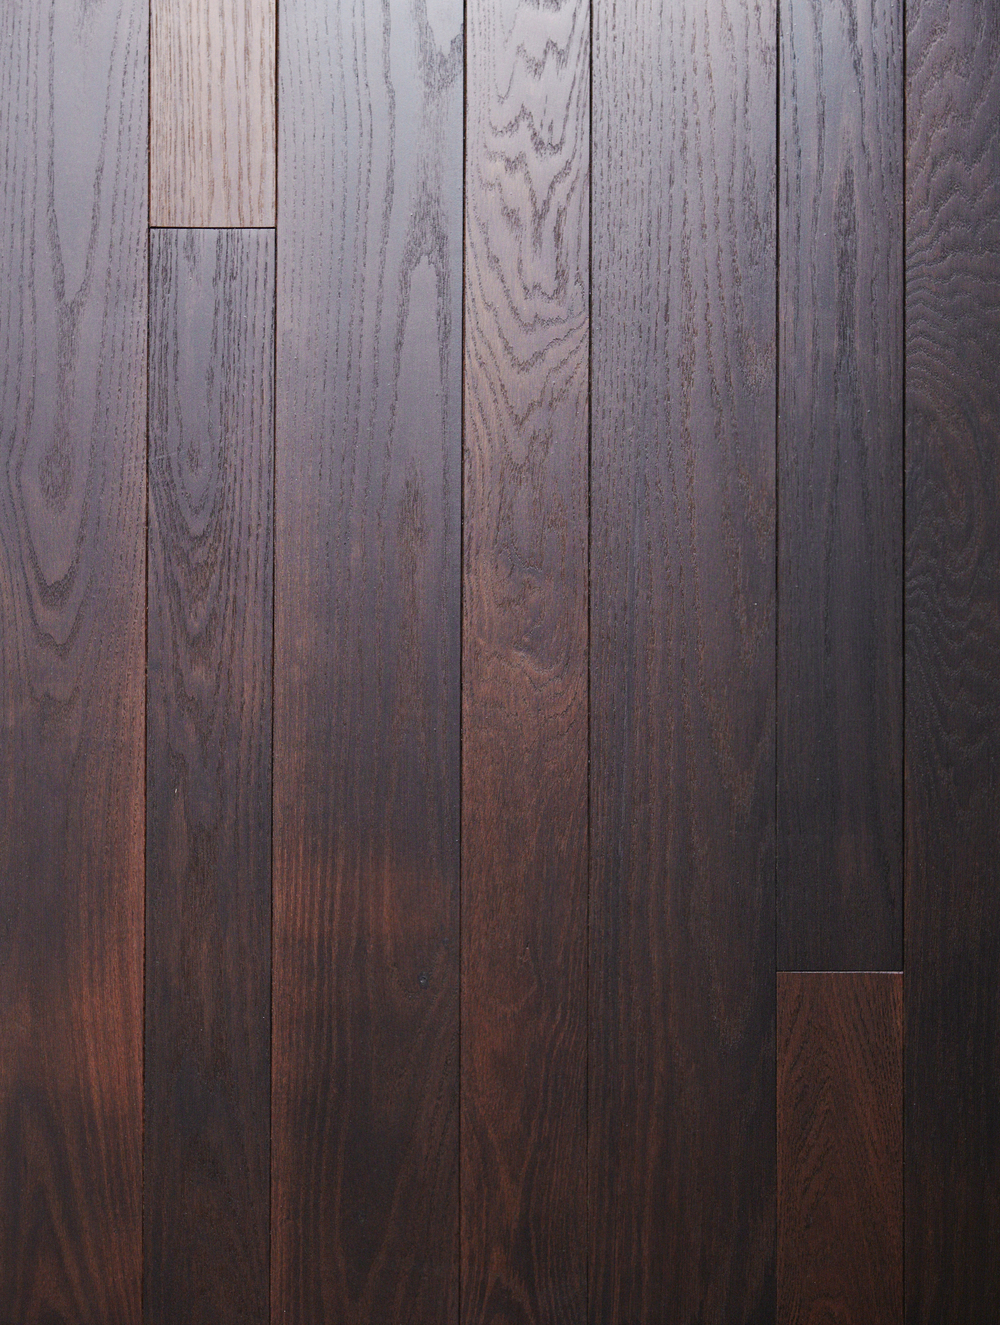 Select Harvest Red Oak Hardwood Flooring [Thermal-Treated, Stout Finish]